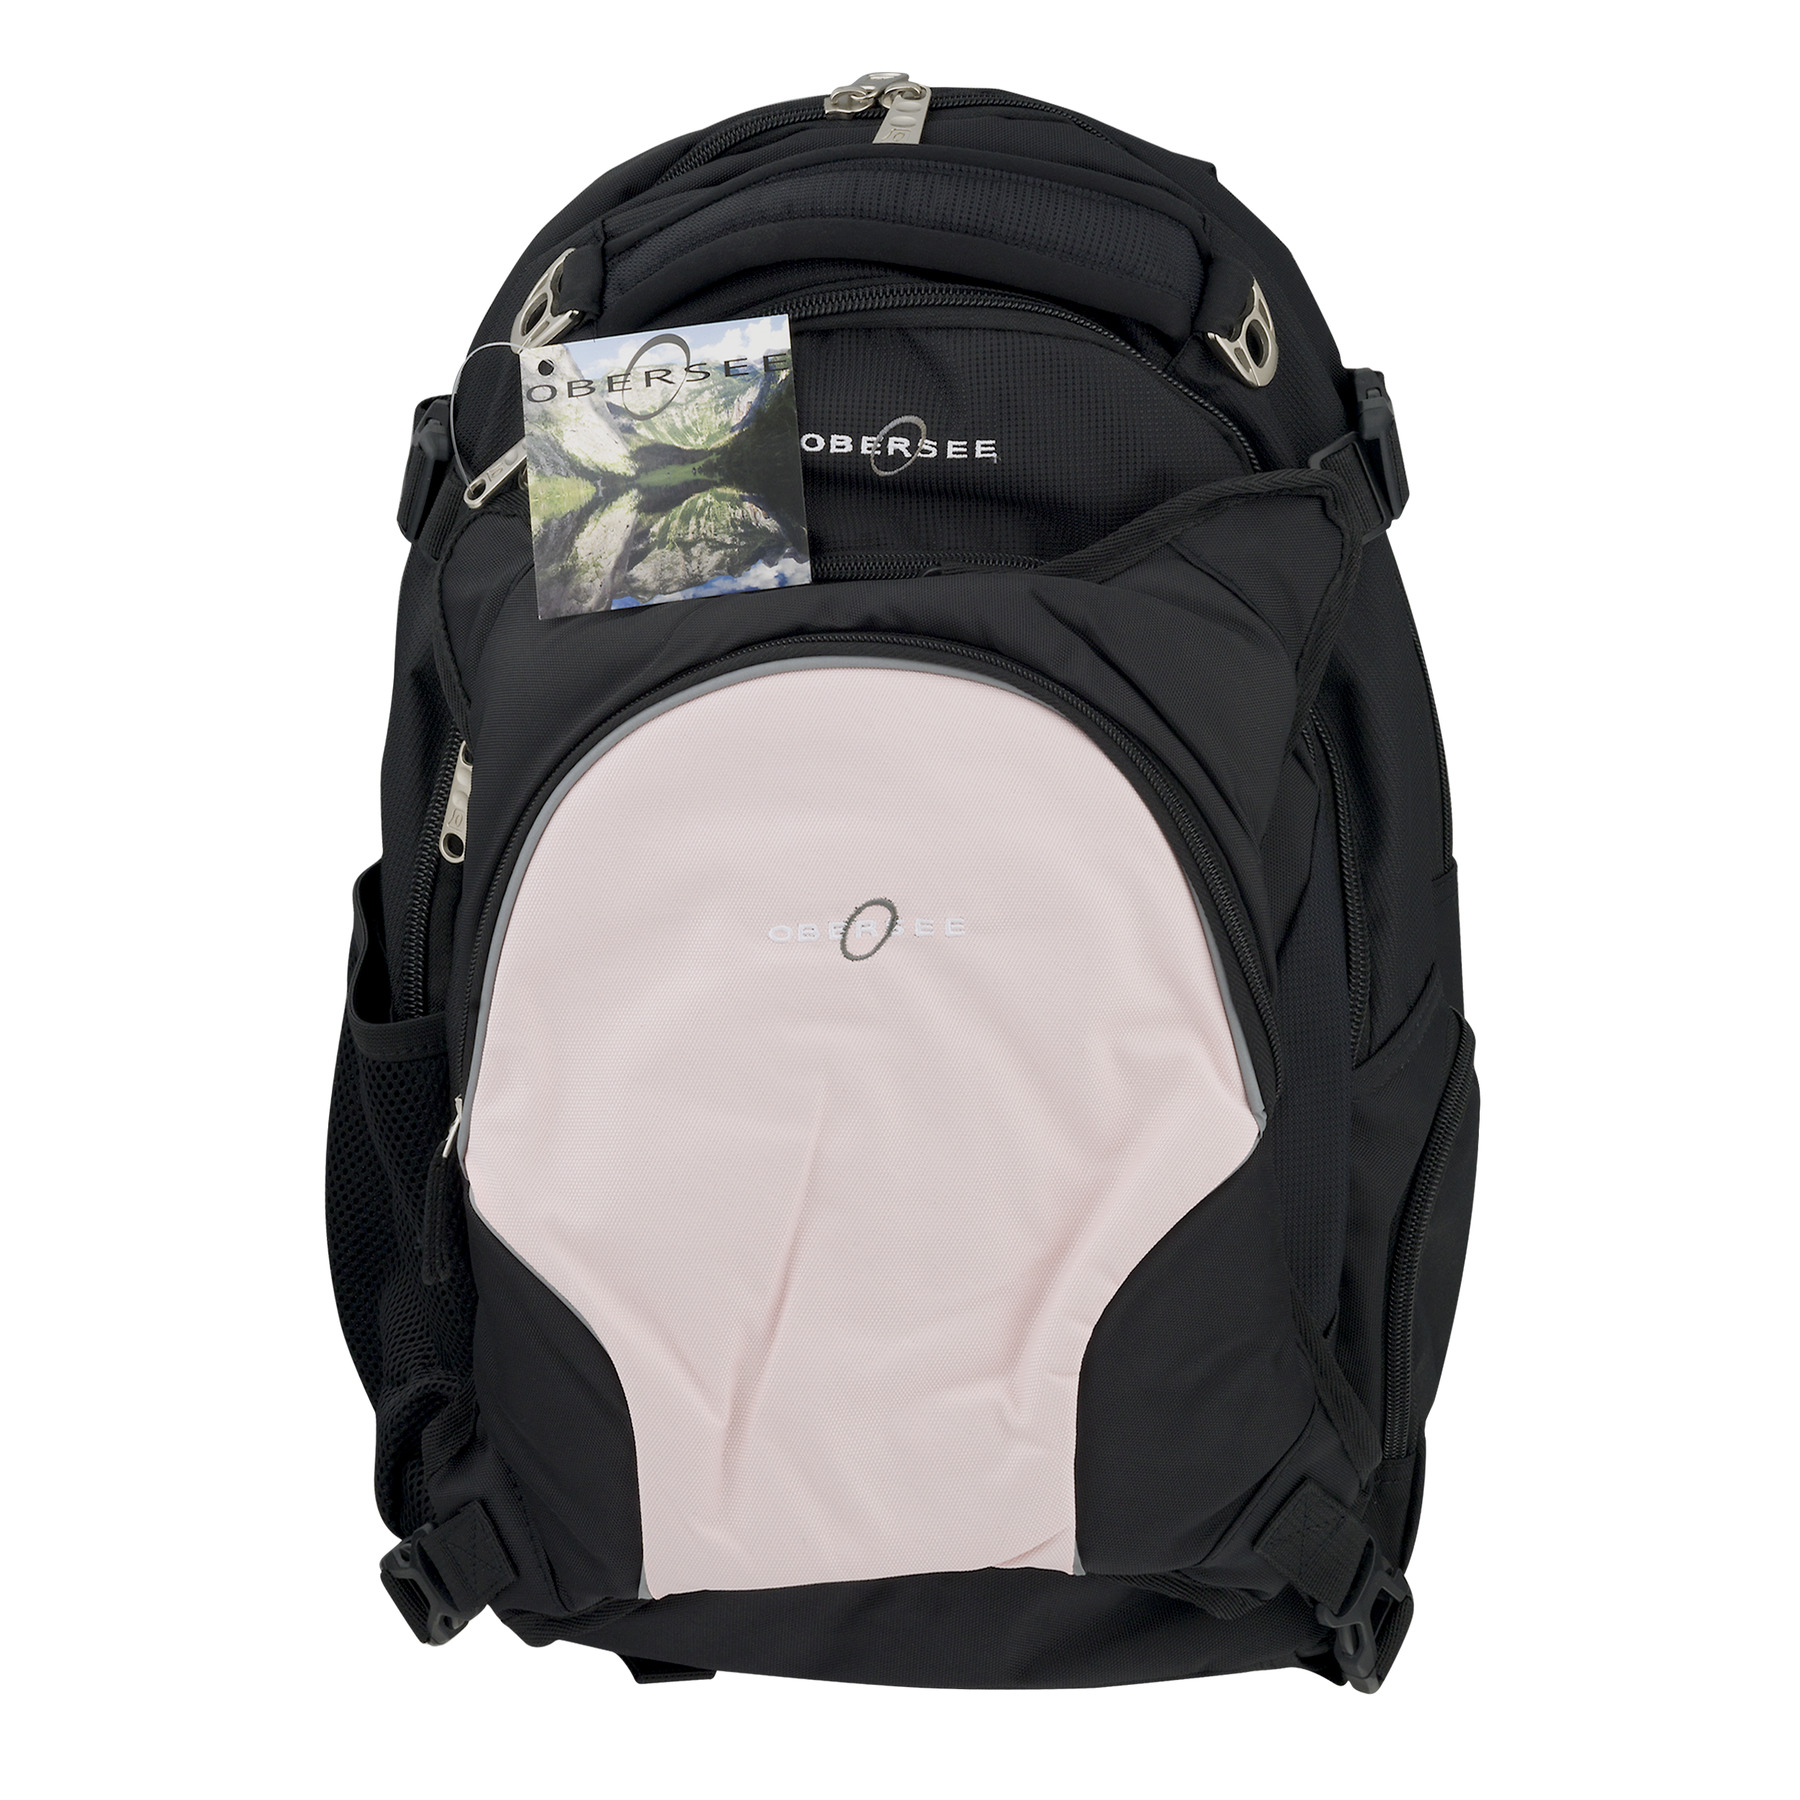 Obersee Oslo Diaper Bag Backpack With Cooler Black Bubble Gum, 5.0 CT by Obersee